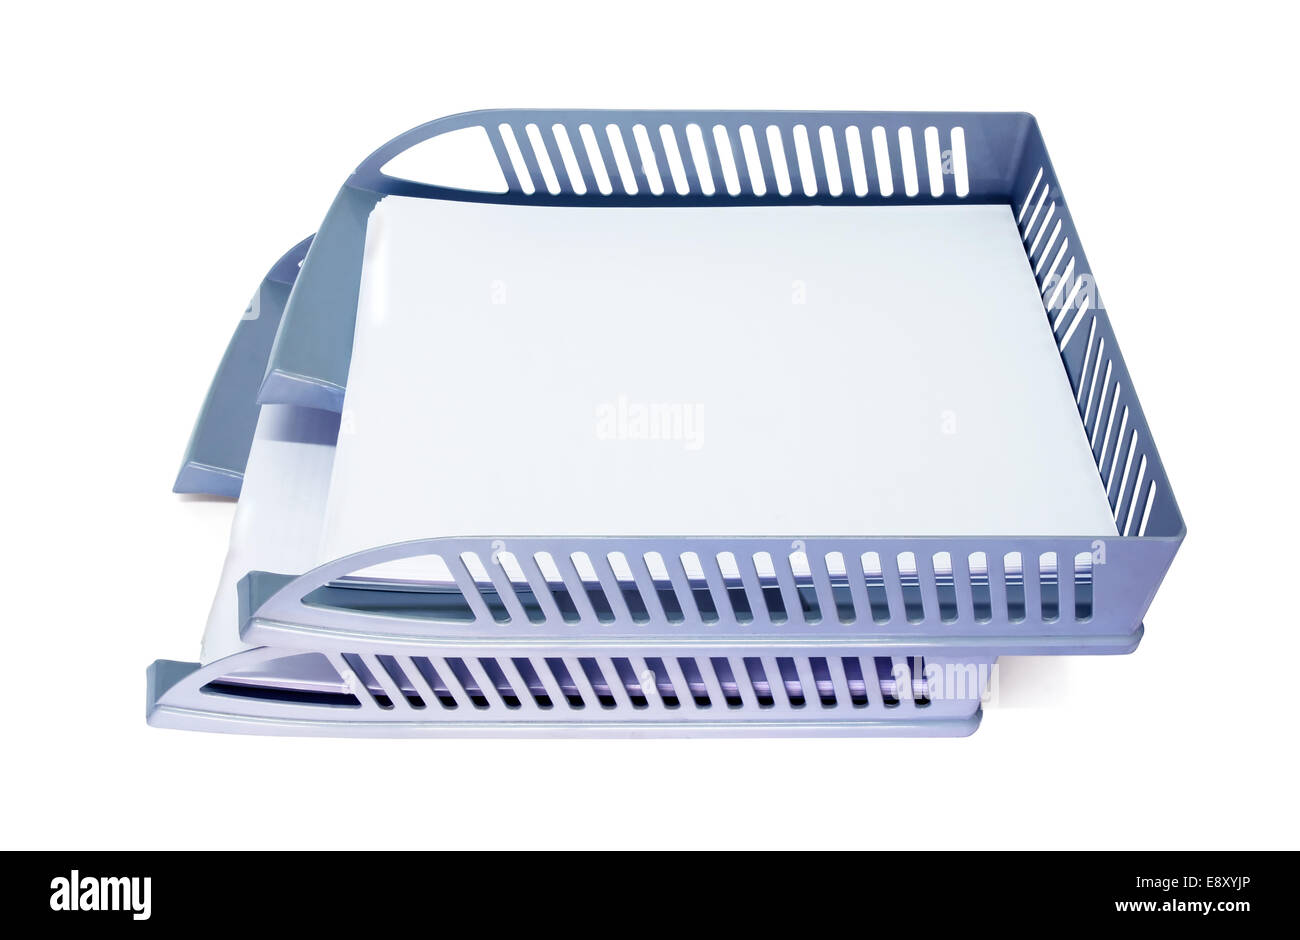 document tray - Stock Image